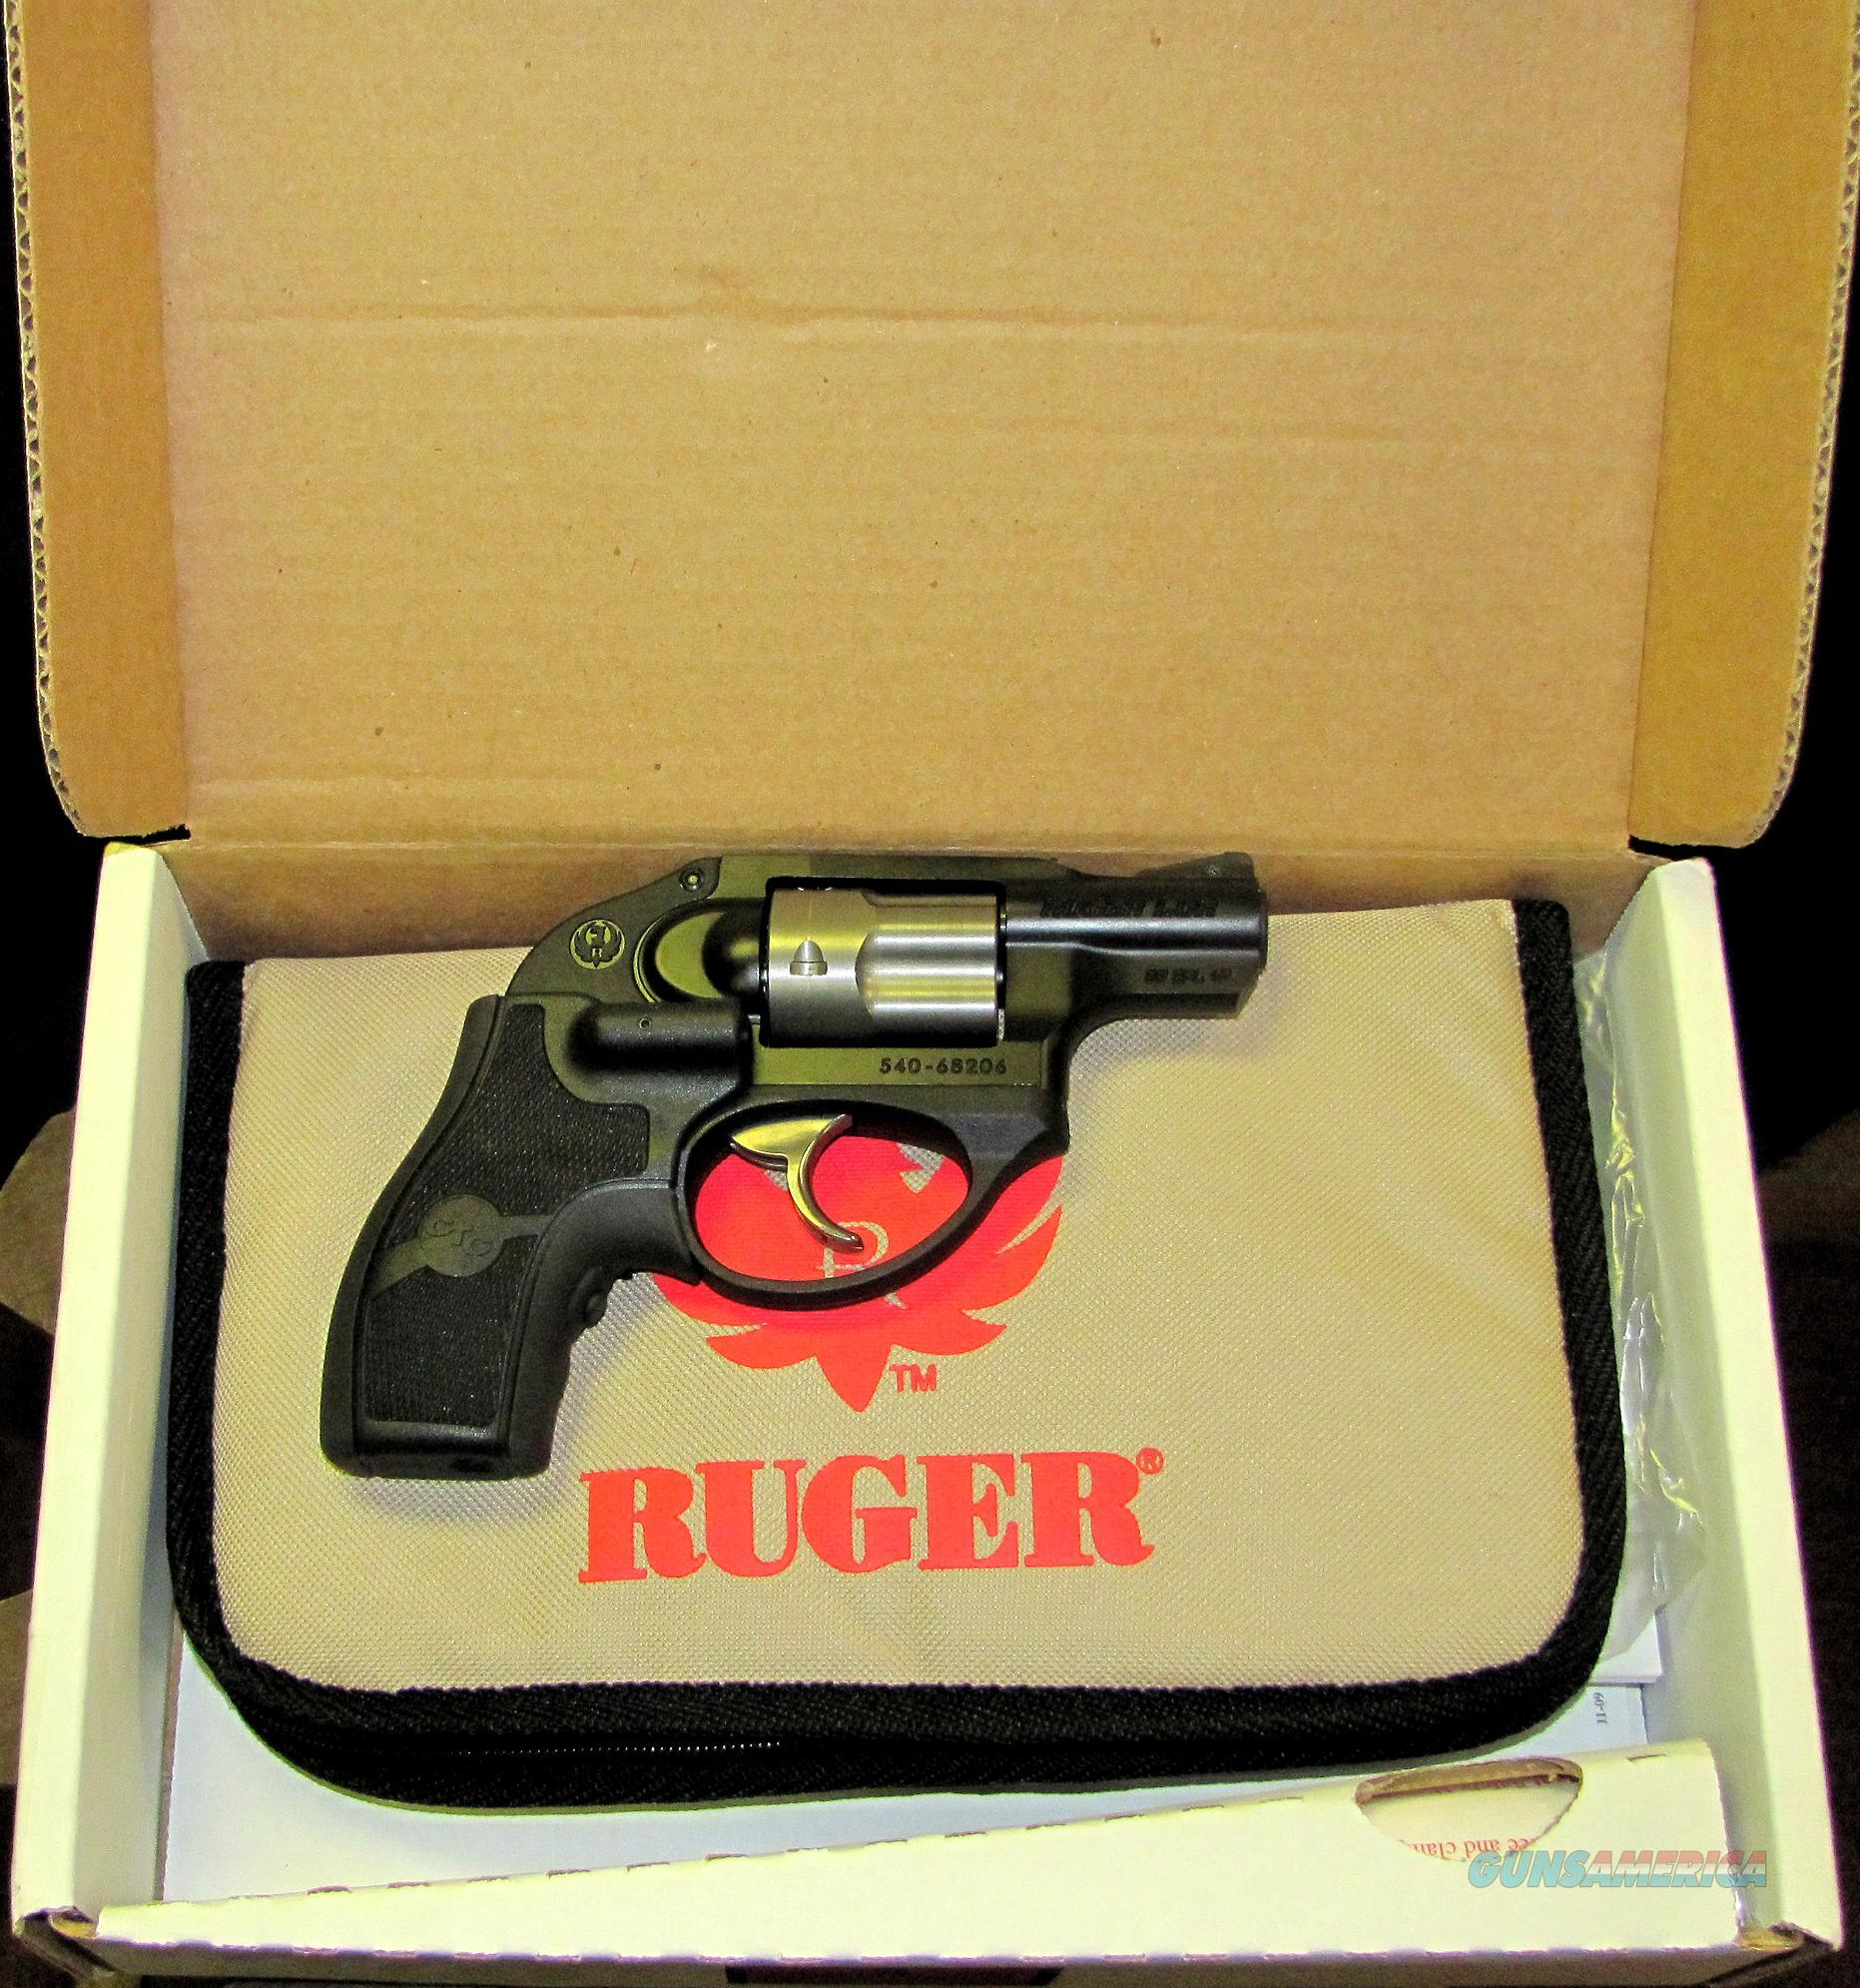 RUGER LCR  Guns > Pistols > Ruger Double Action Revolver > LCR